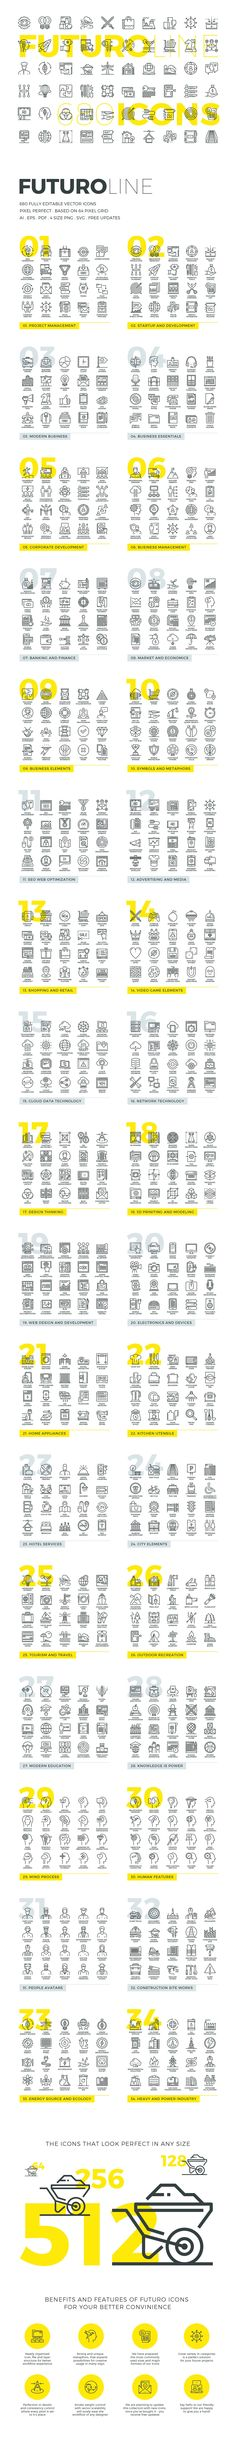 Futuro Line Icons https://creativemarket.com/Bloomua/464583-Futuro-Line-Icons?u=MeeraG | #vector #line #icons #set #collection #business #web #design #website #creative #symbol #stroke #flat #outline #pack #thin #development #technology #graphics #icon